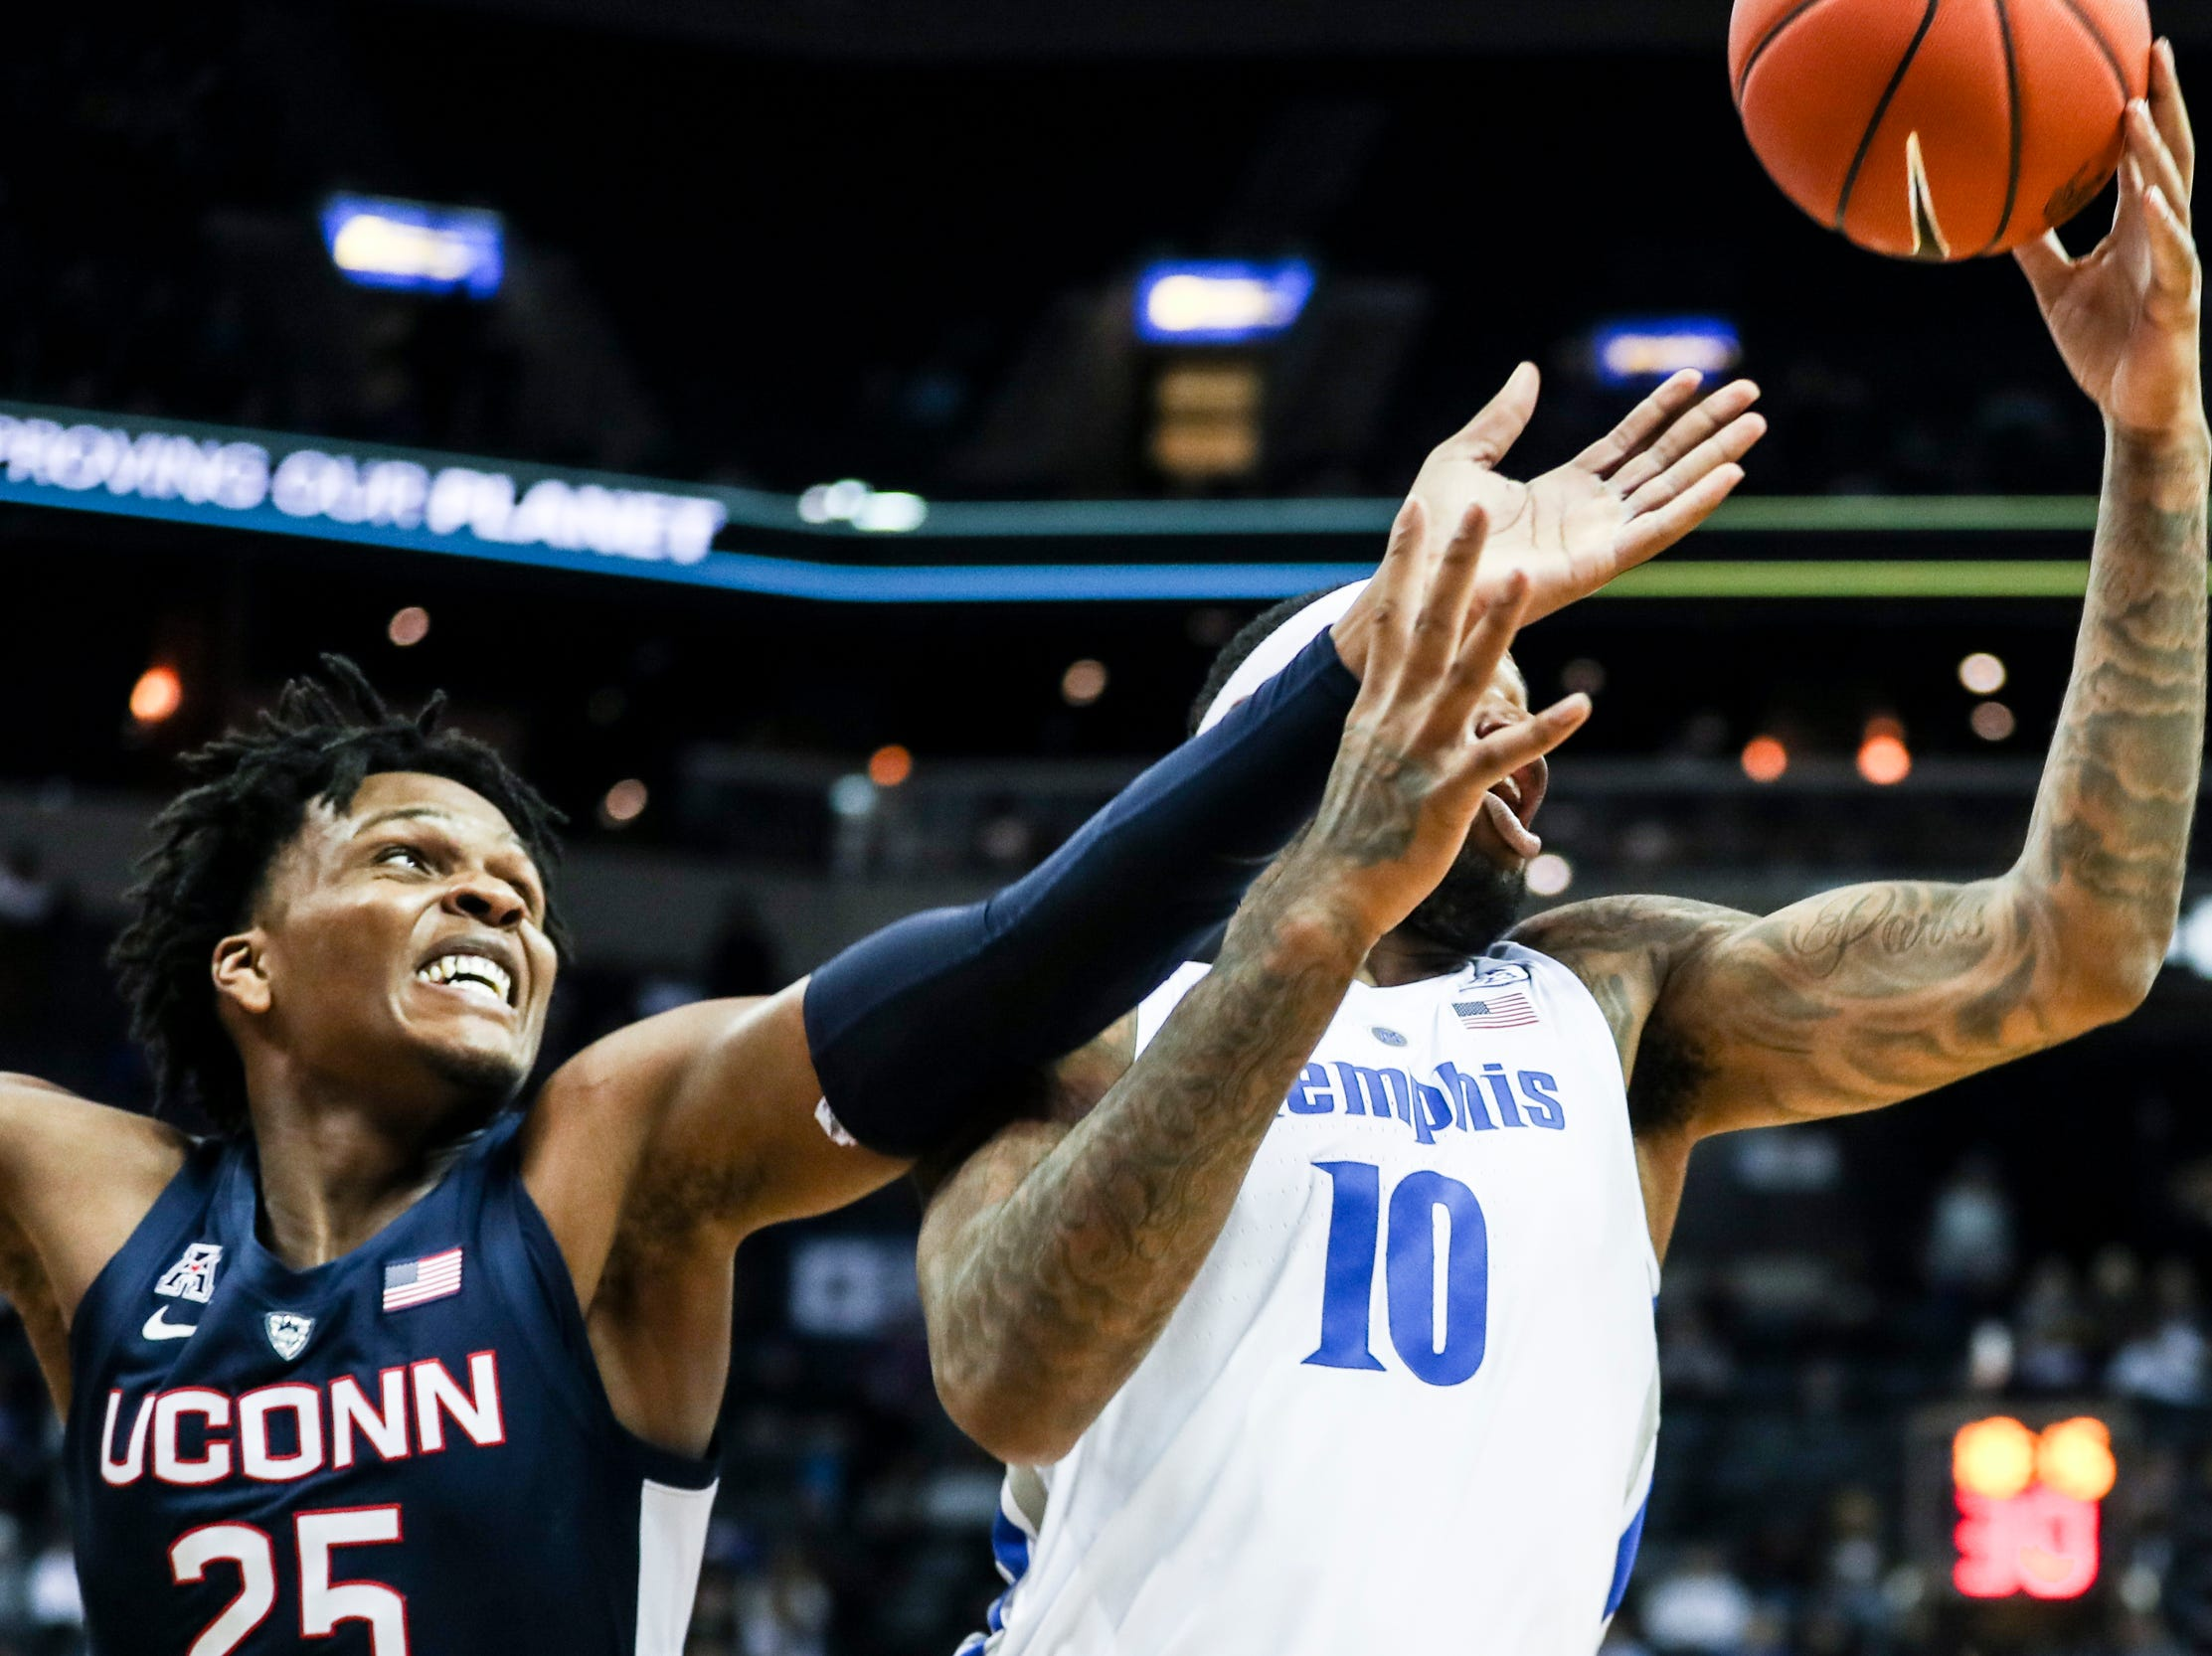 February 10, 2019 - Connecticut's Josh Carlton, left, and Memphis' Mike Parks Jr. work for the ball during Sunday's game versus Connecticut at the FedExForum.